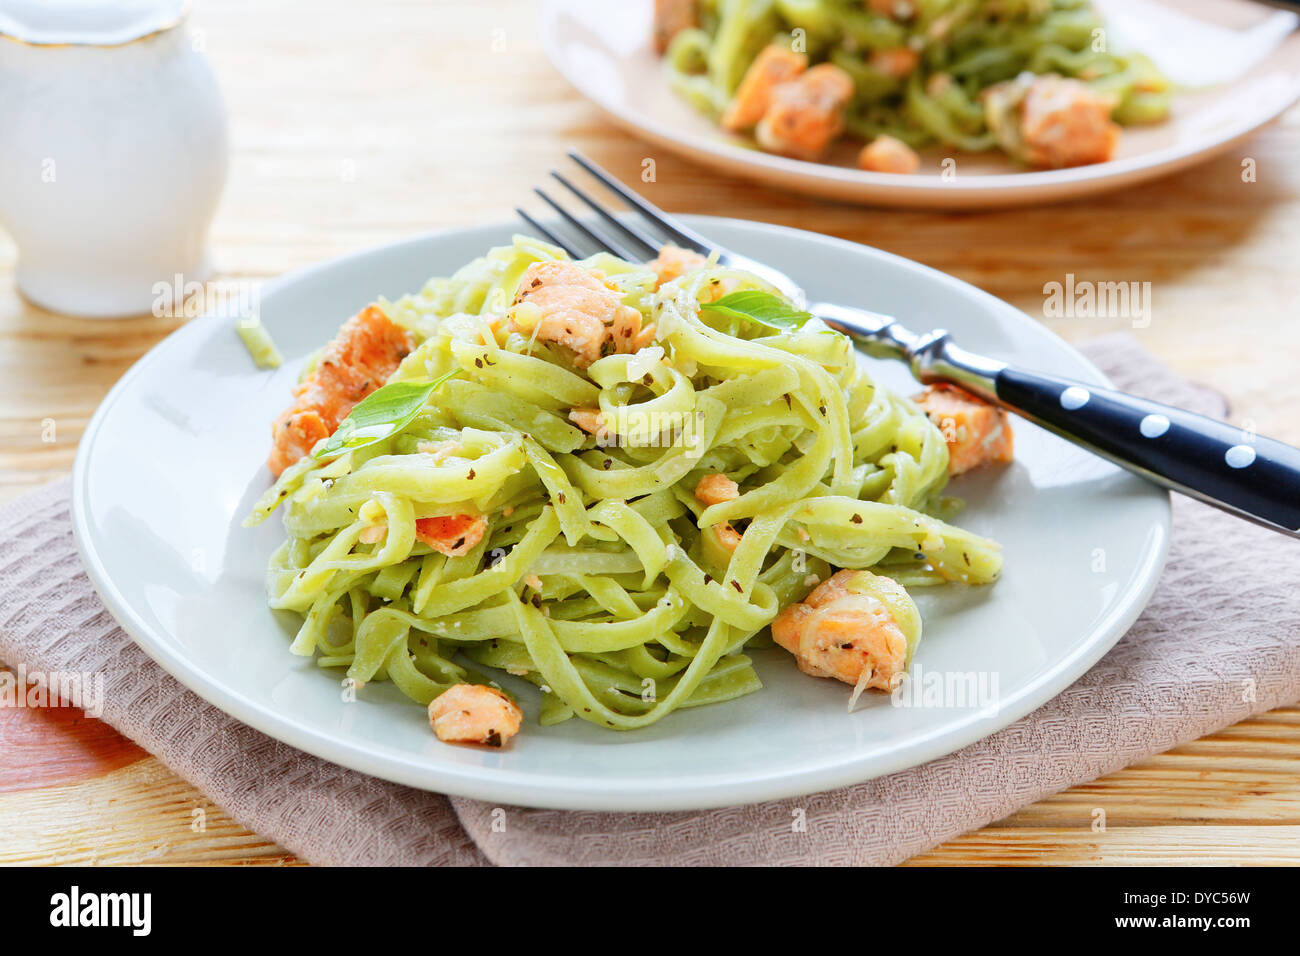 nutritious spinach pasta with salmon, food closeup - Stock Image